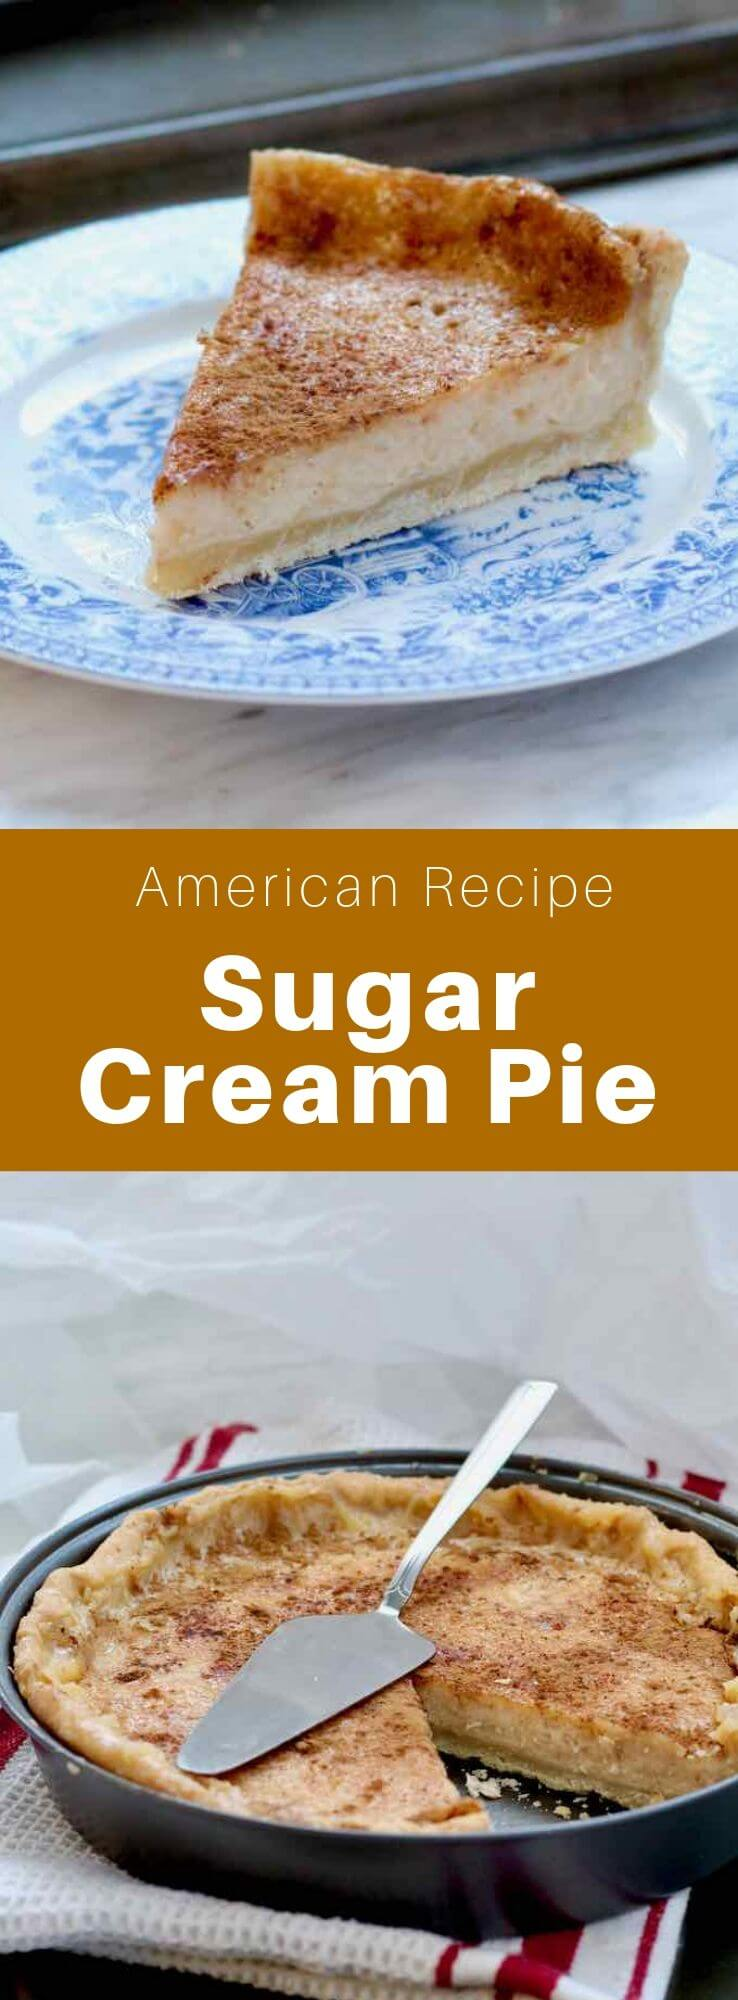 A sugar cream pie is a traditional pie from Indiana that is prepared with a dough filled with butter, vanilla custard, sugar, and flour, then baked. #AmericanRecipe #AmericanFood #AmericanCuisine #WorldCuisine #196flavors